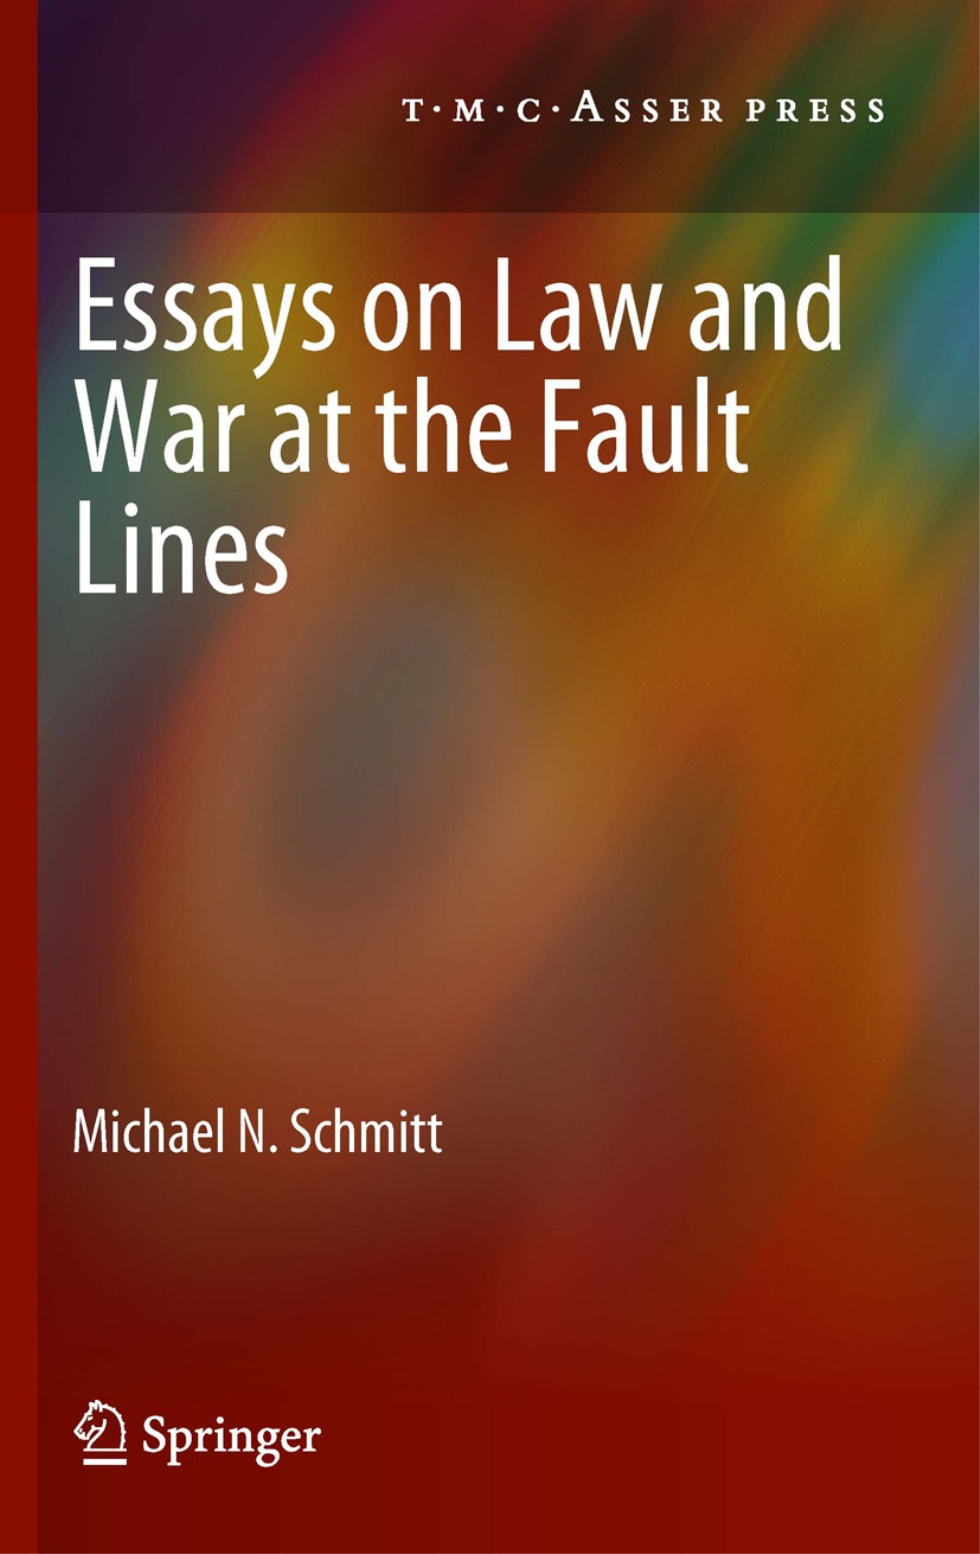 Essays on Law and War at the Fault Lines